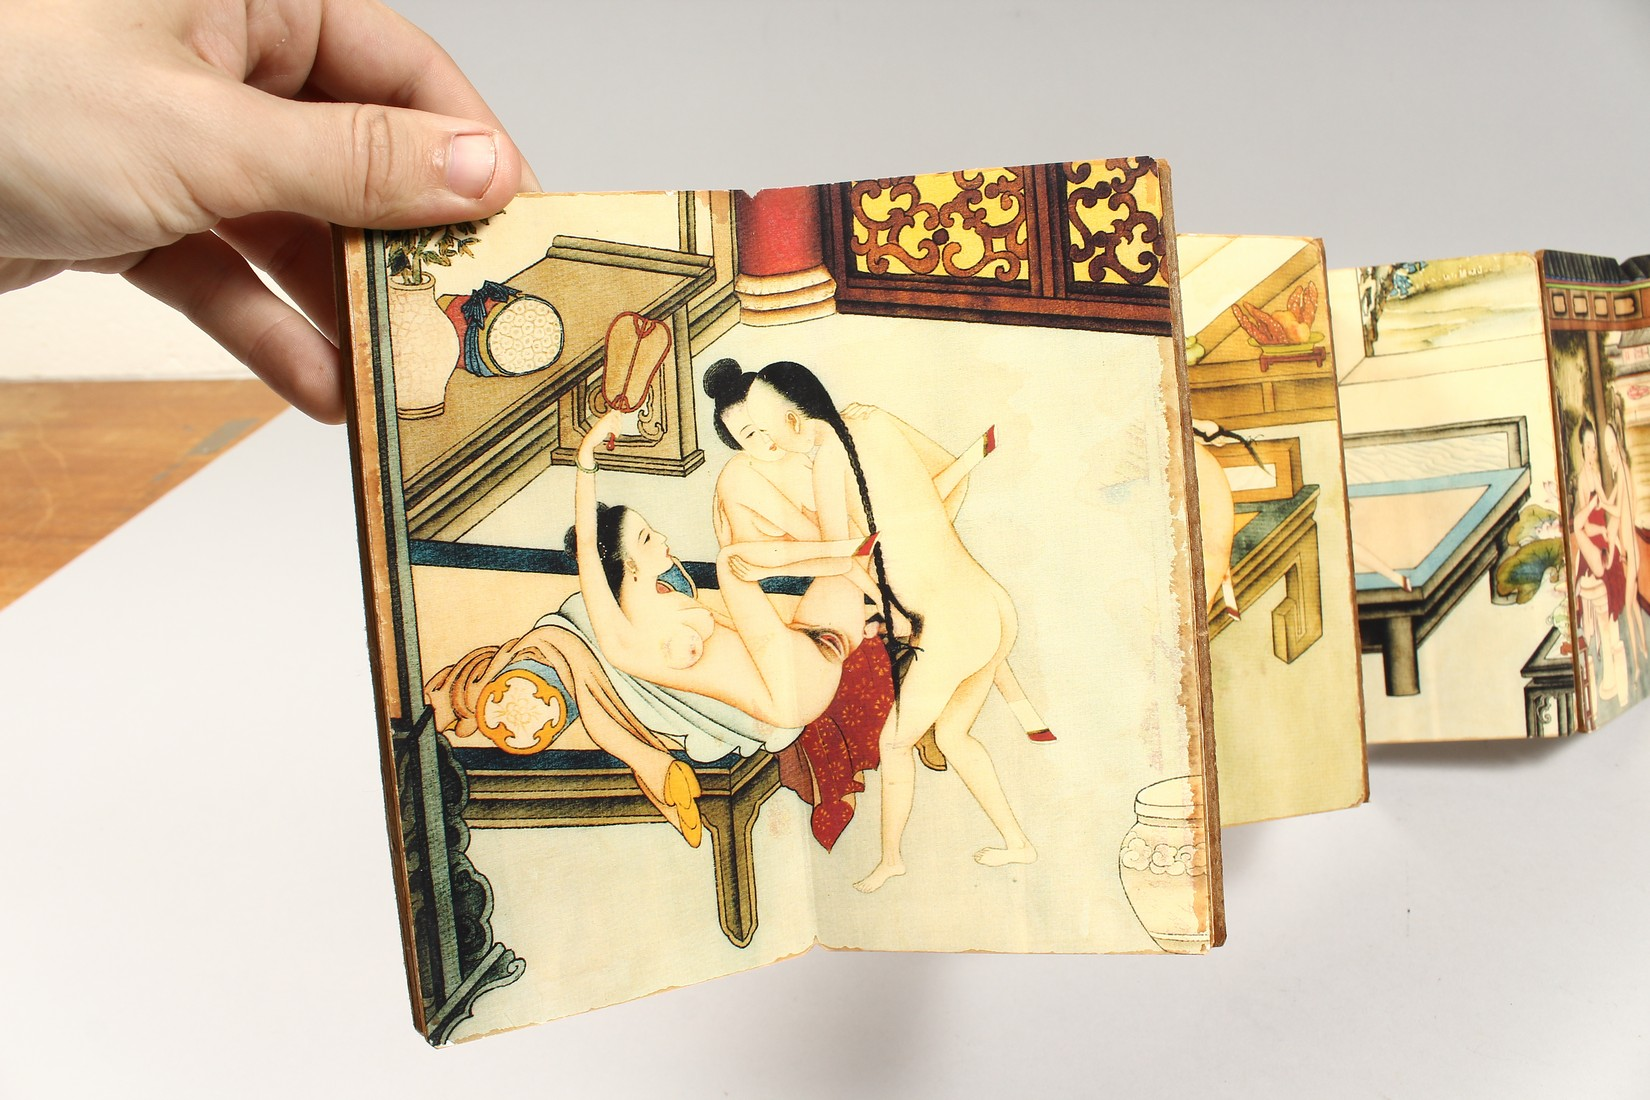 AN EROTIC CHINESE FOLDING BOOK. - Image 4 of 9